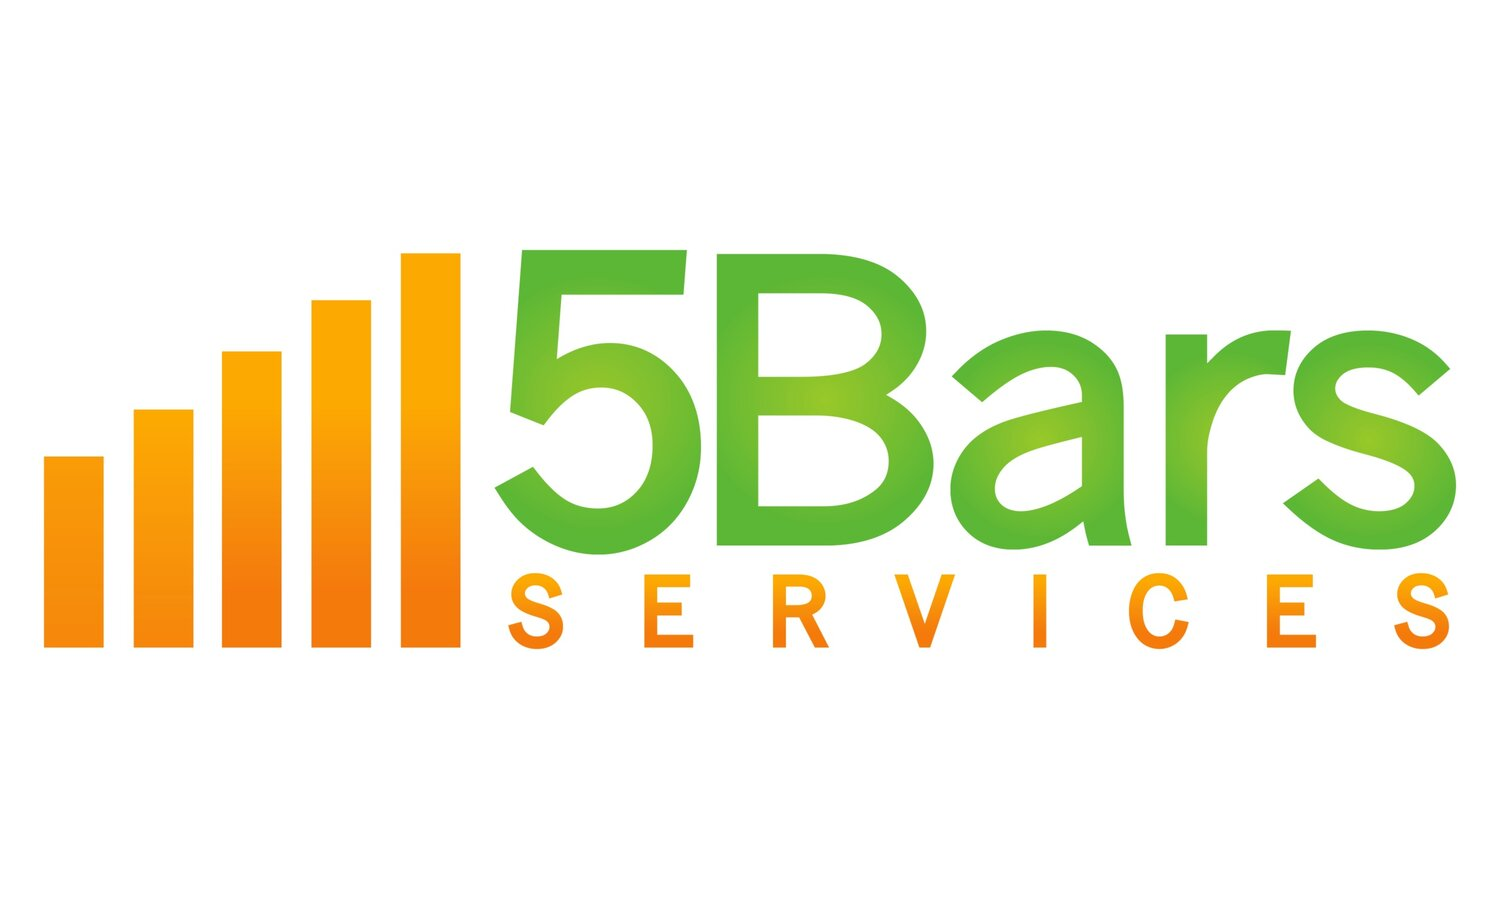 5 Bars Services